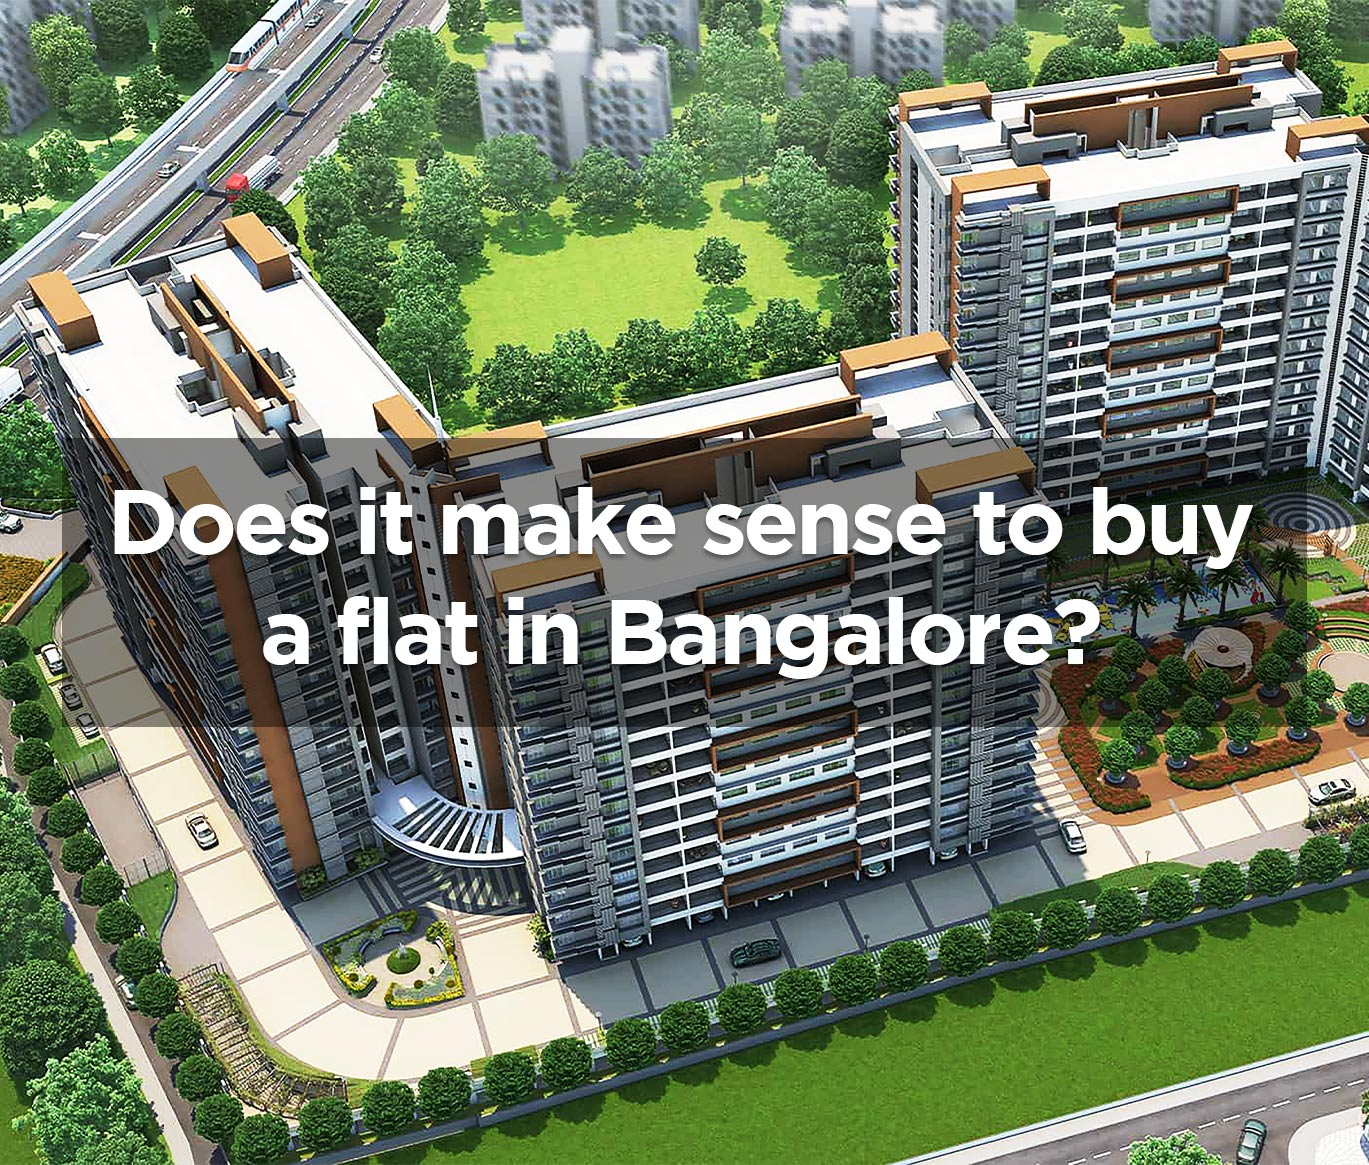 Does it make sense to buy a flat in Bangalore?